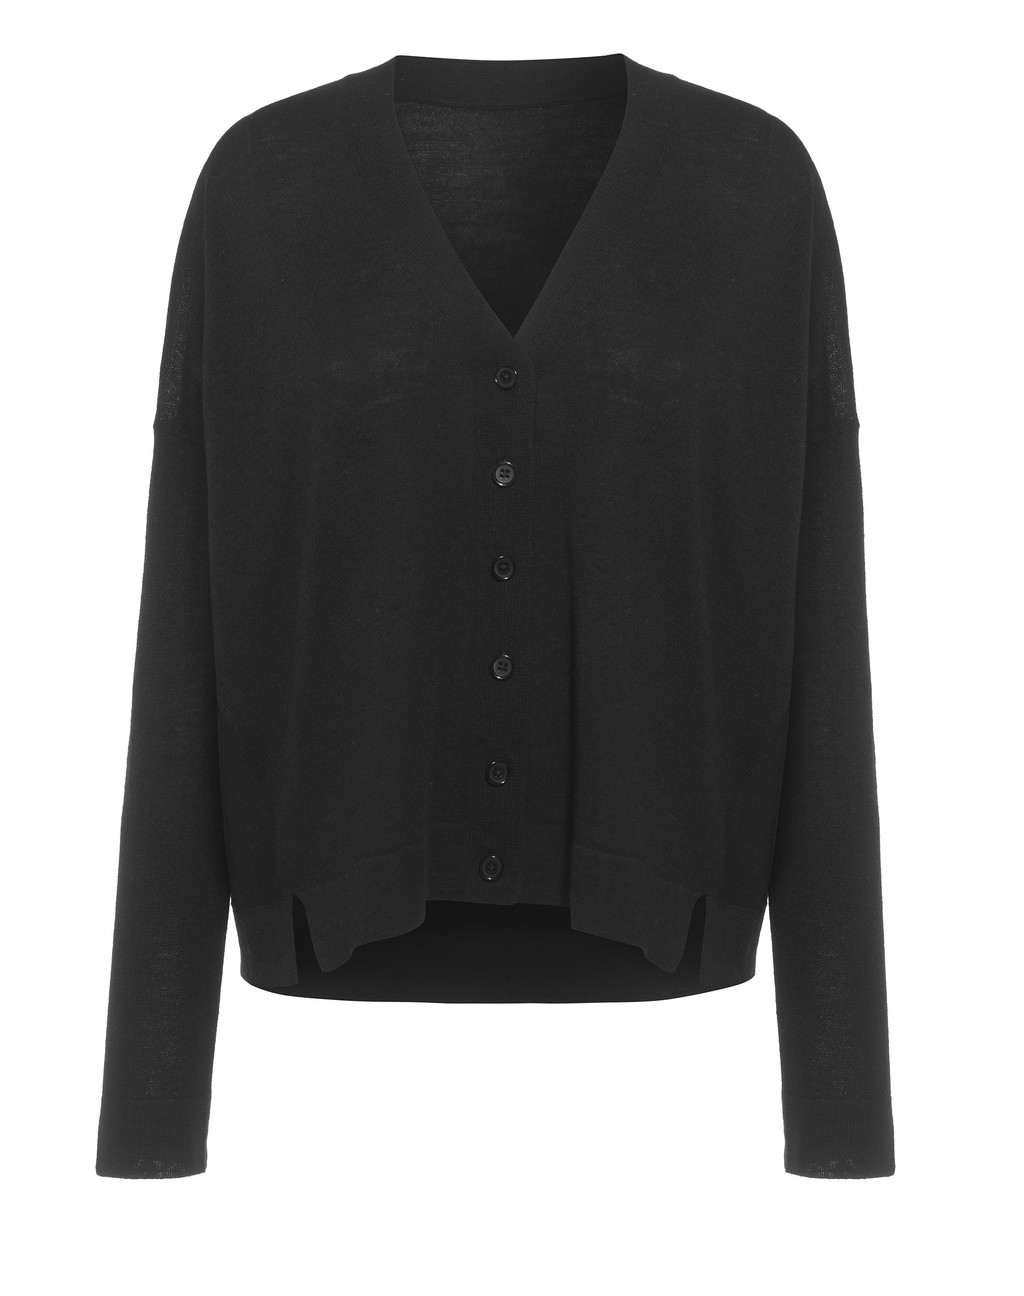 Fine Knit Cardigan Black - neckline: v-neck; pattern: plain; predominant colour: black; occasions: casual; length: standard; style: standard; fibres: wool - 100%; fit: slim fit; sleeve length: long sleeve; sleeve style: standard; texture group: knits/crochet; pattern type: knitted - fine stitch; season: s/s 2016; wardrobe: basic